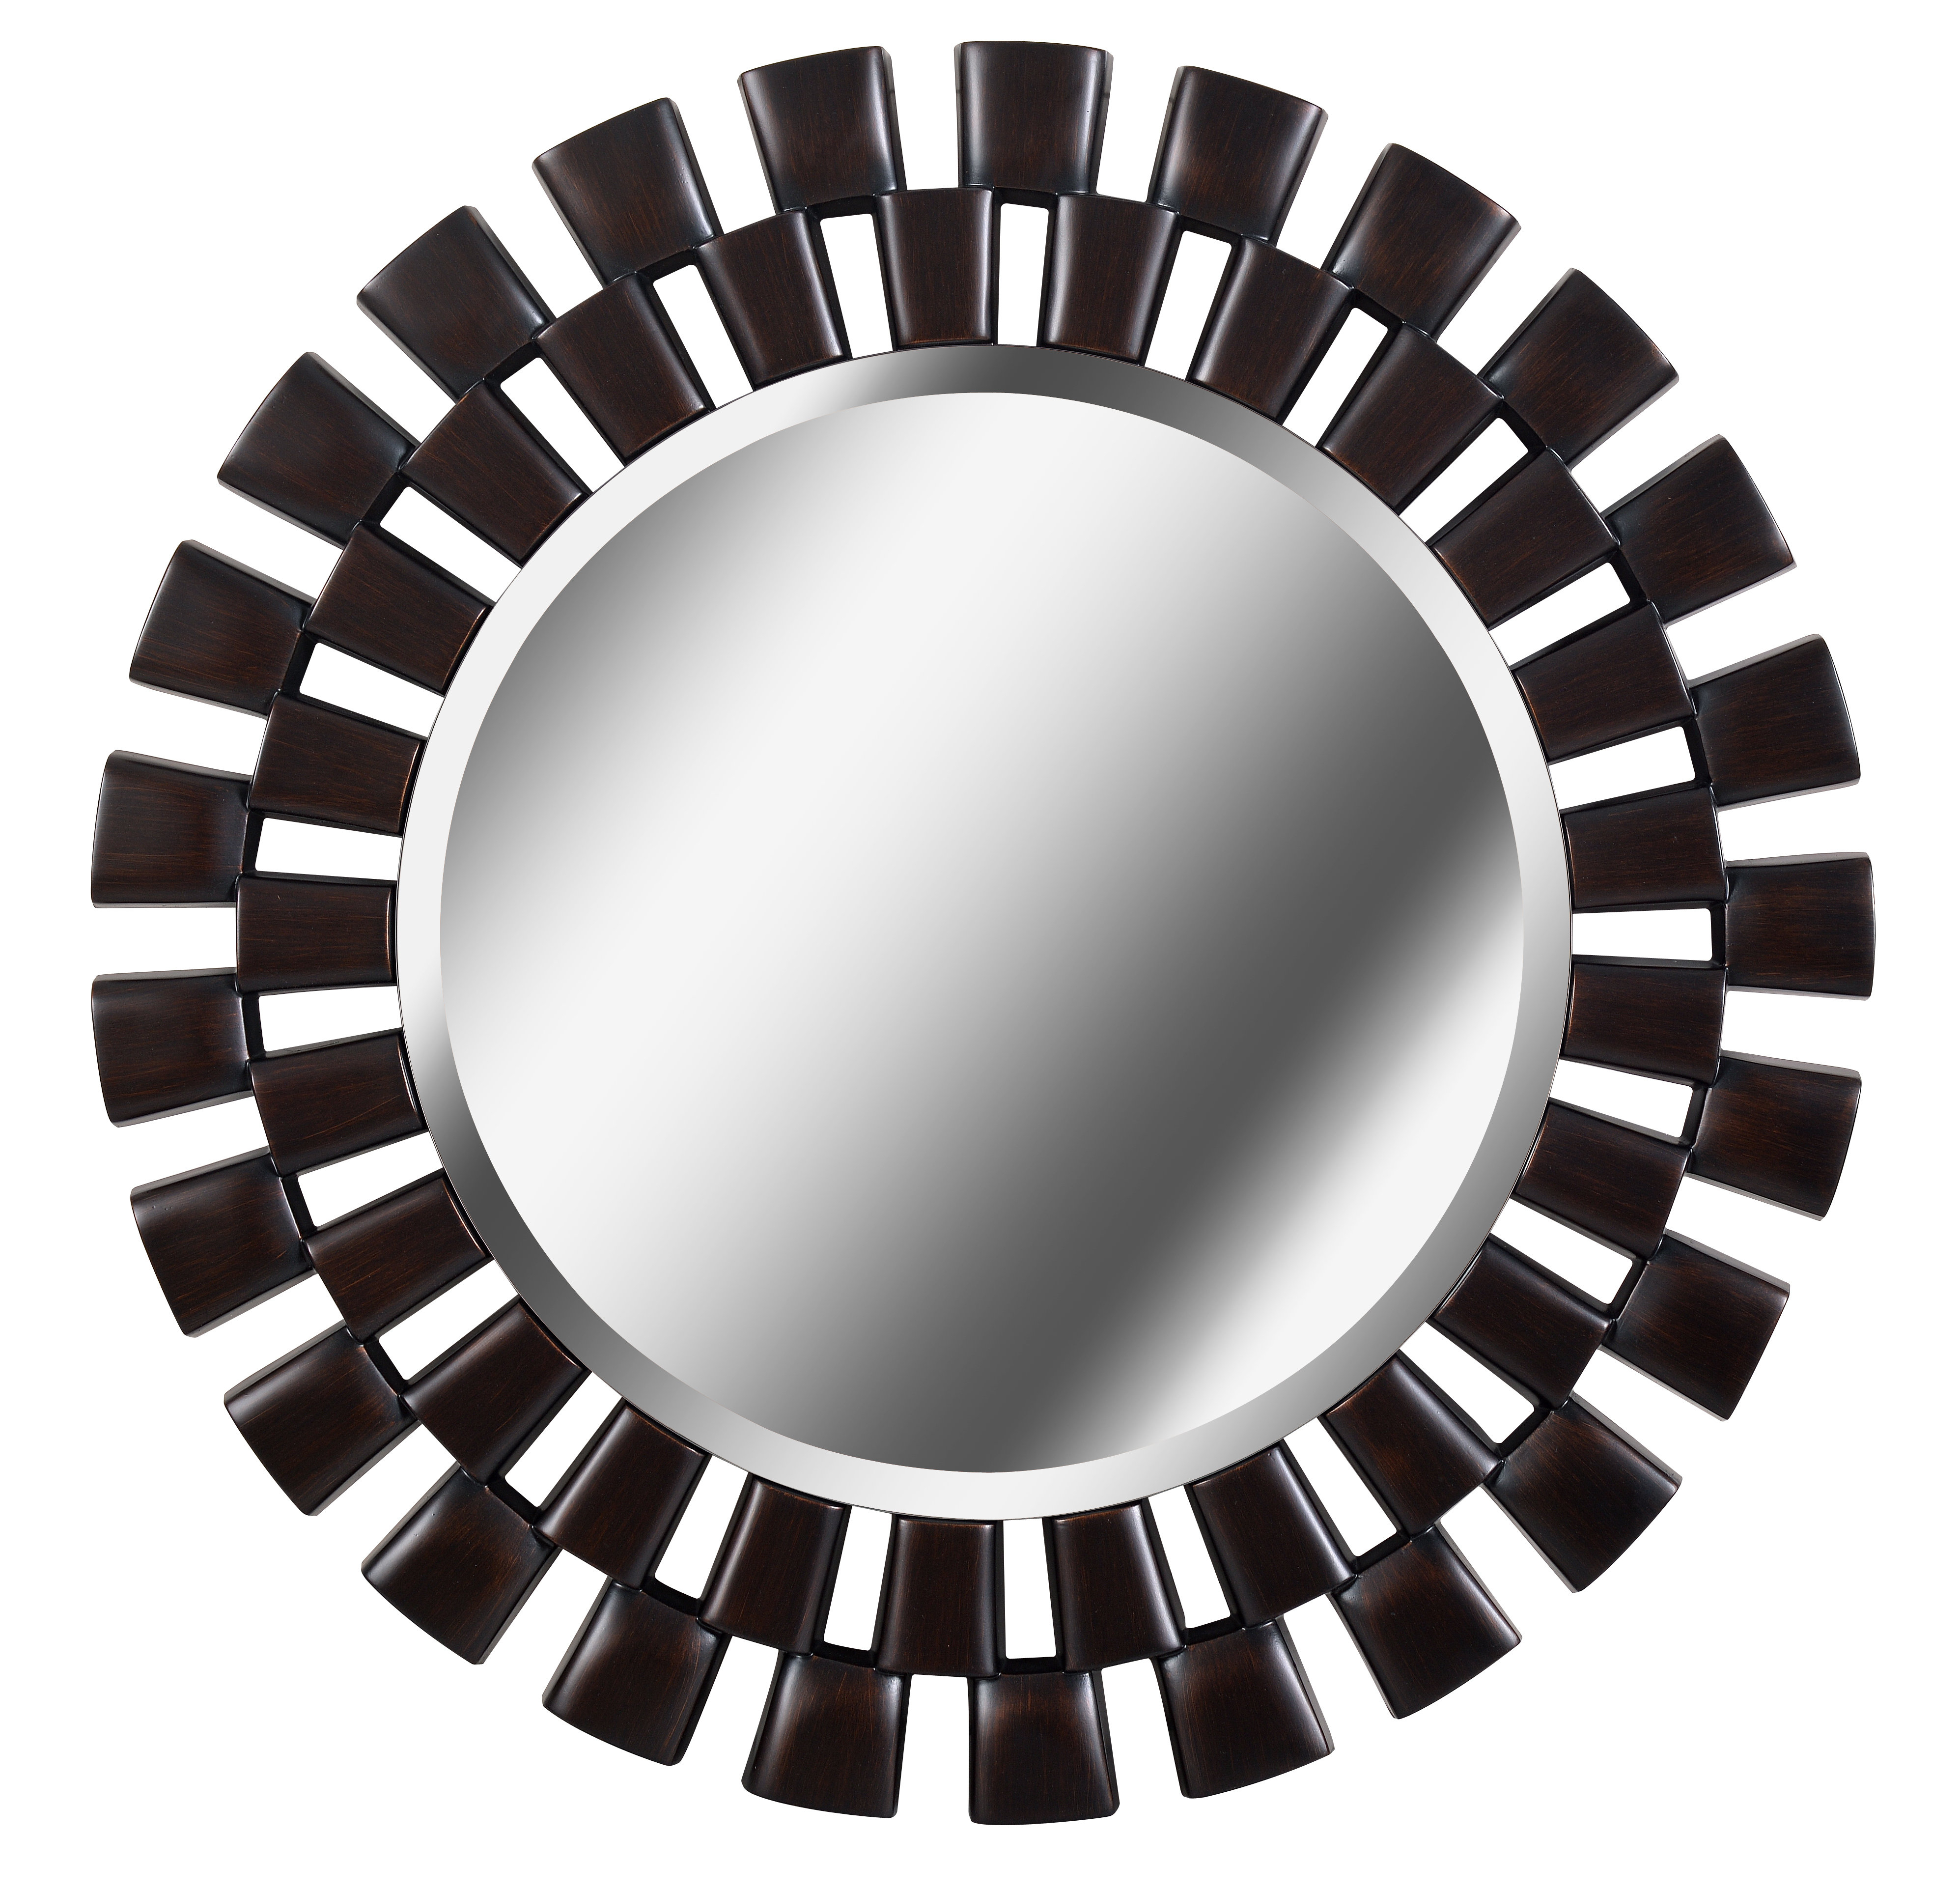 Glam Beveled Accent Mirror Intended For Glam Beveled Accent Mirrors (Image 7 of 20)